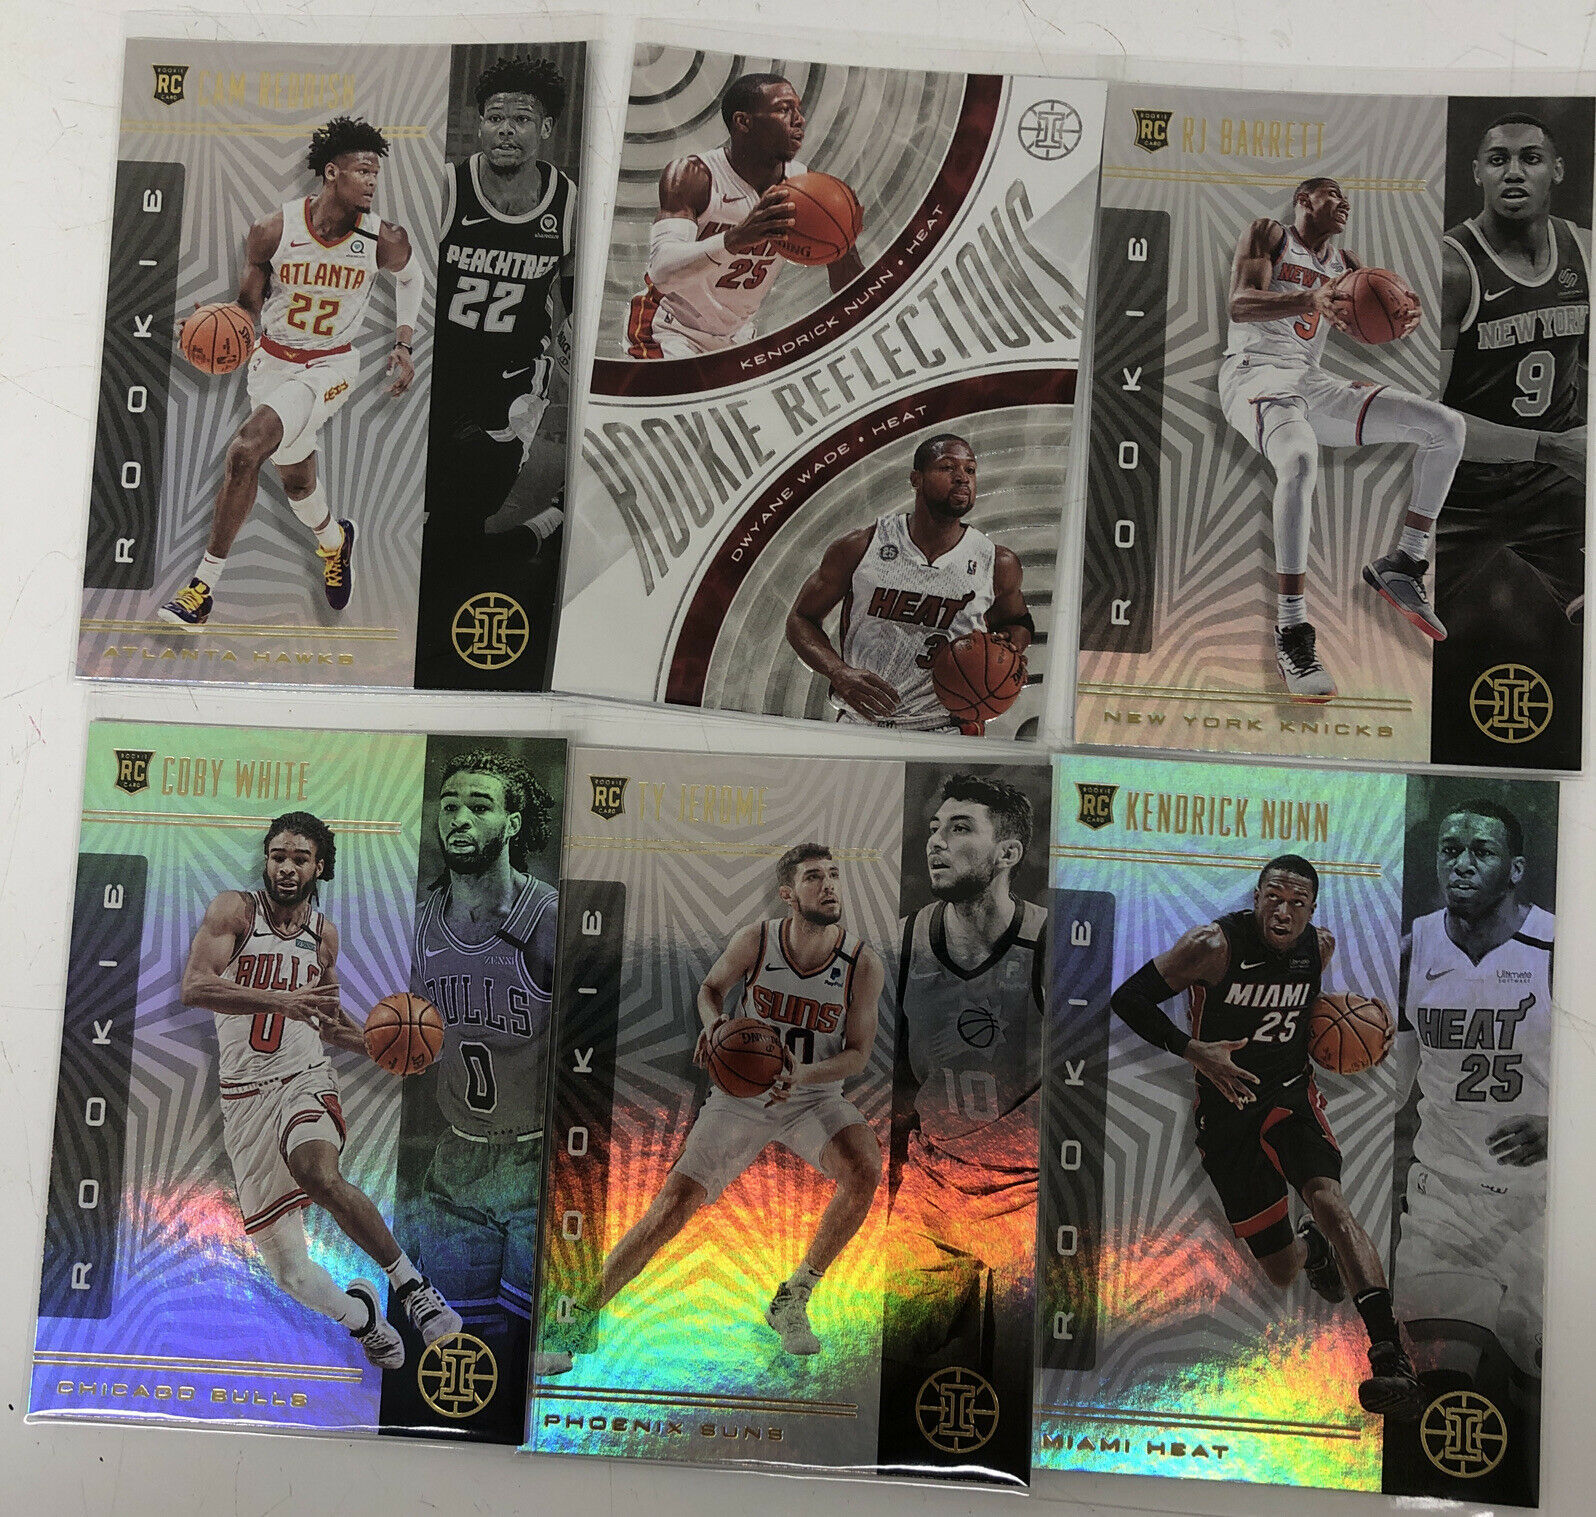 Primary image for 2019-2020 Illusions Basketball Kendrick Nunn Dwyane Wade Plus Other Rookies